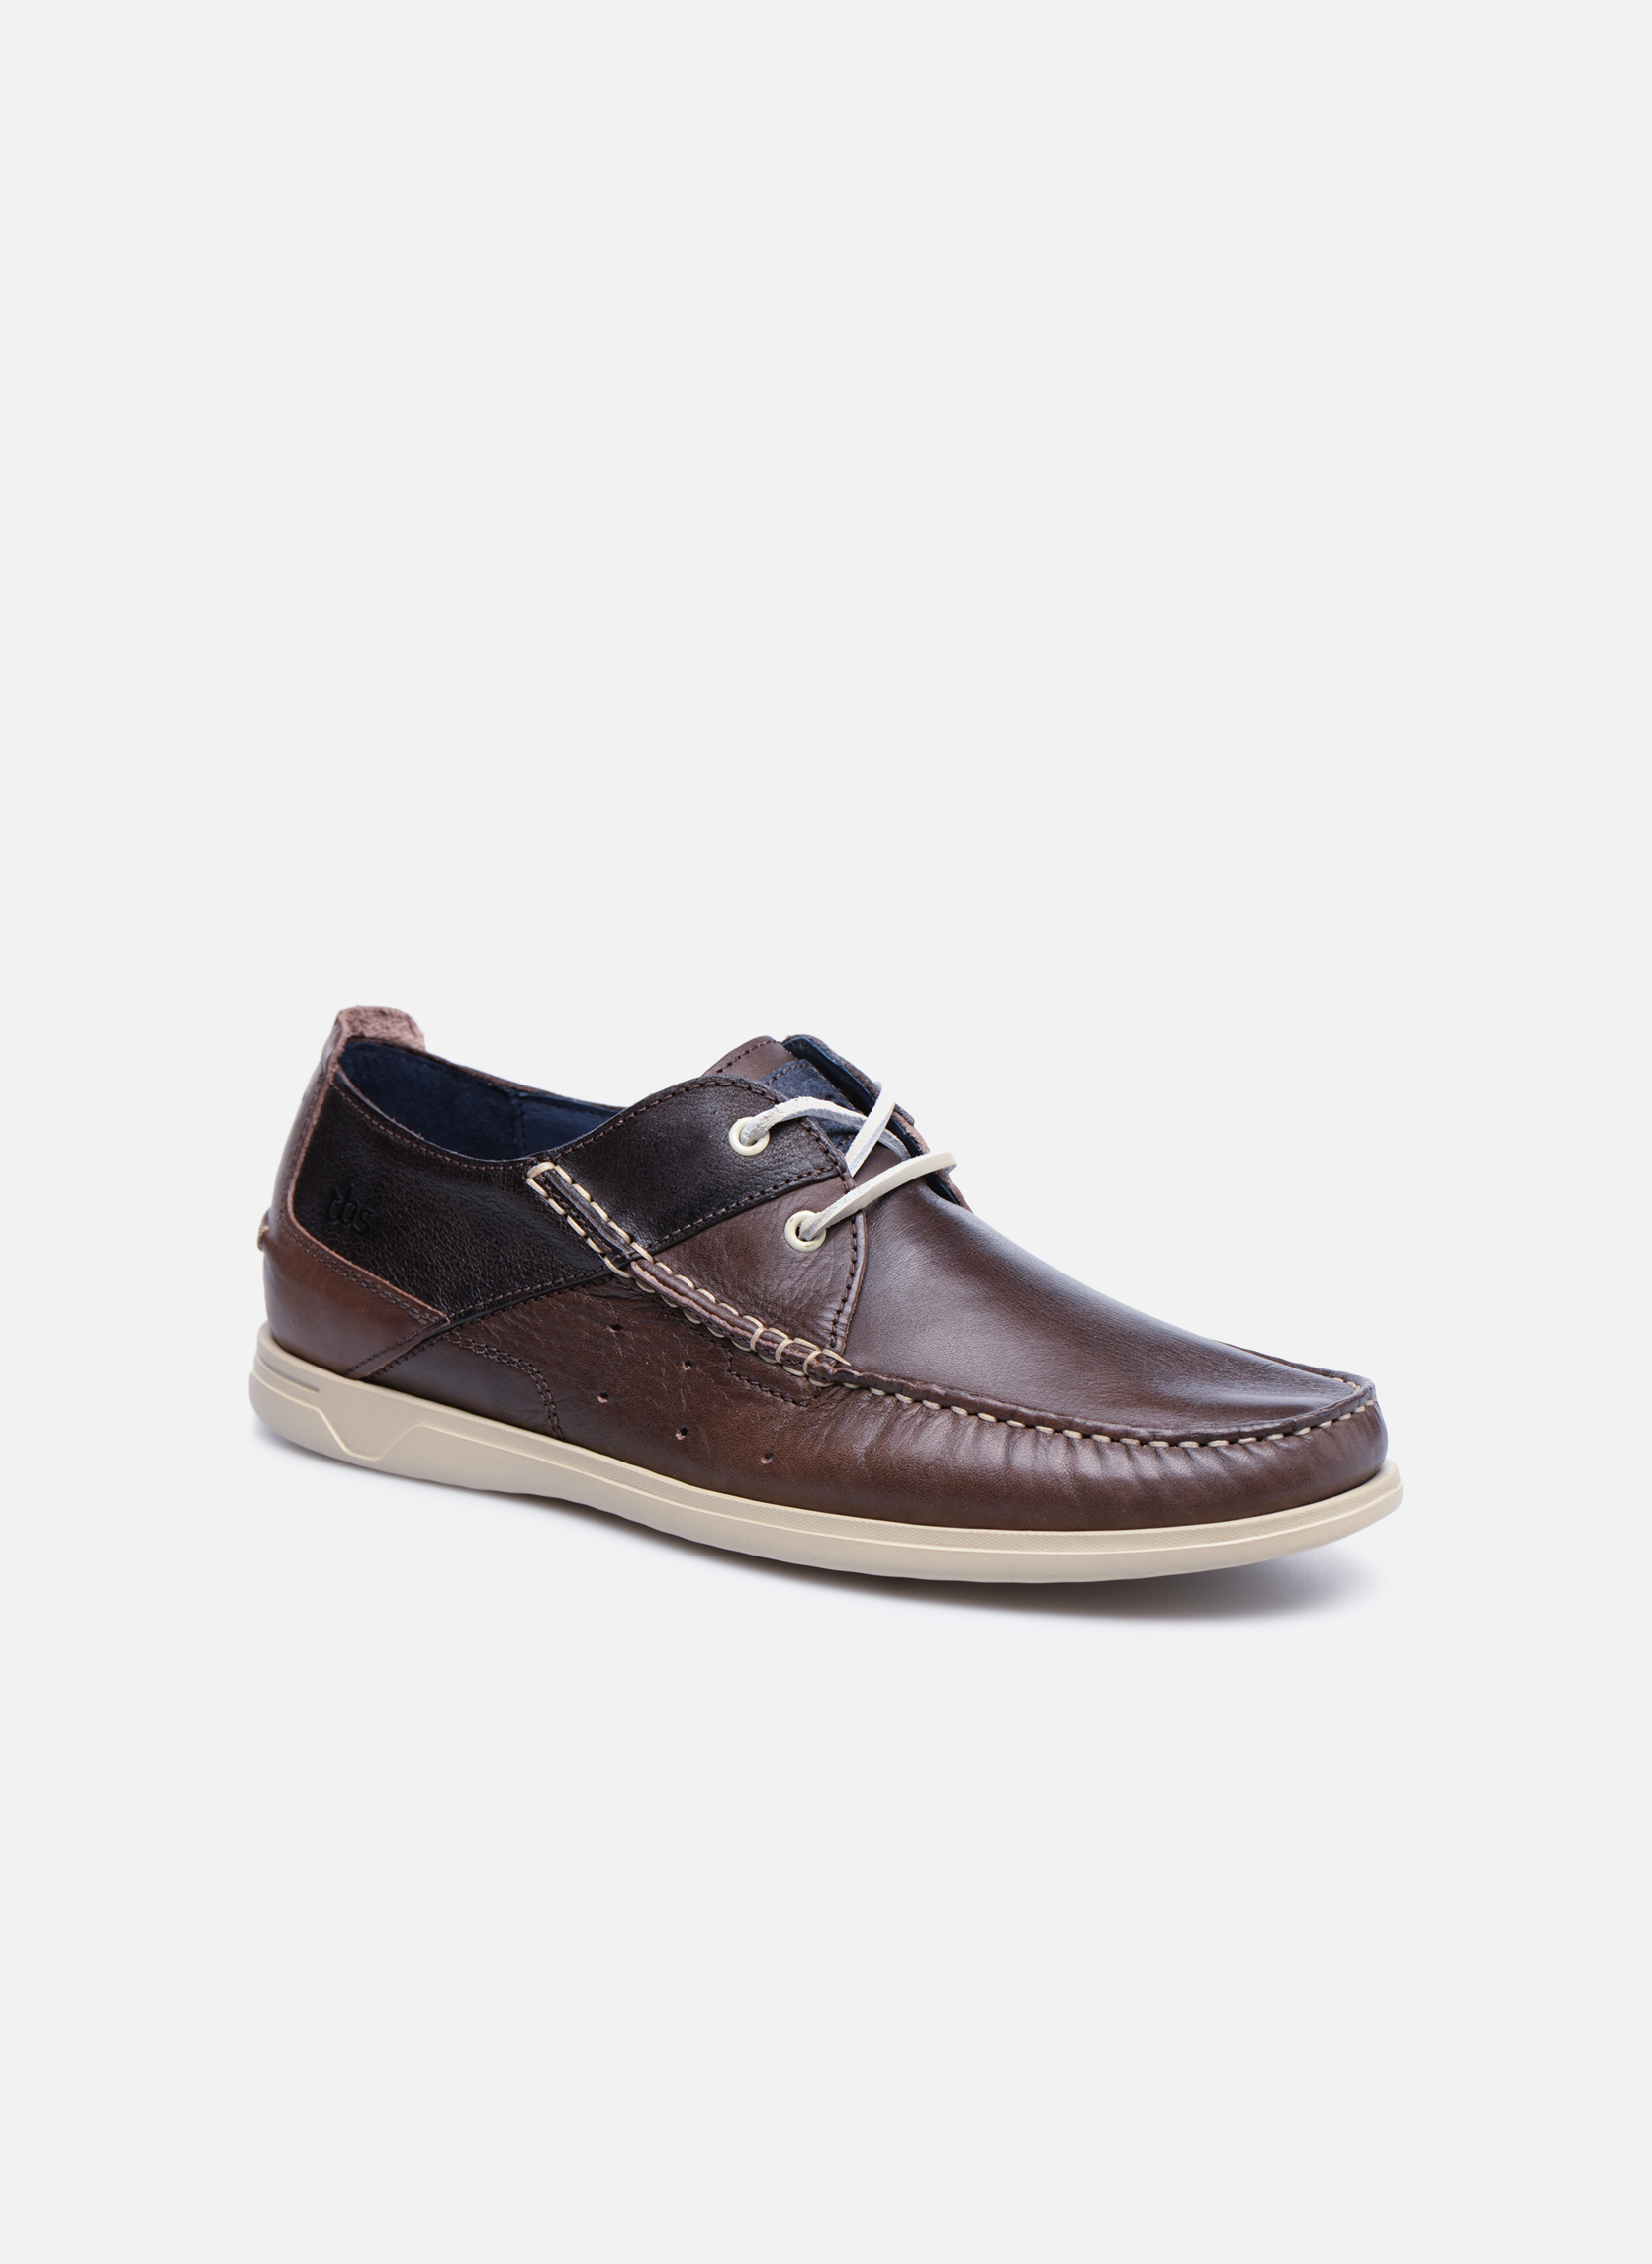 Chaussures à lacets Homme Fortye